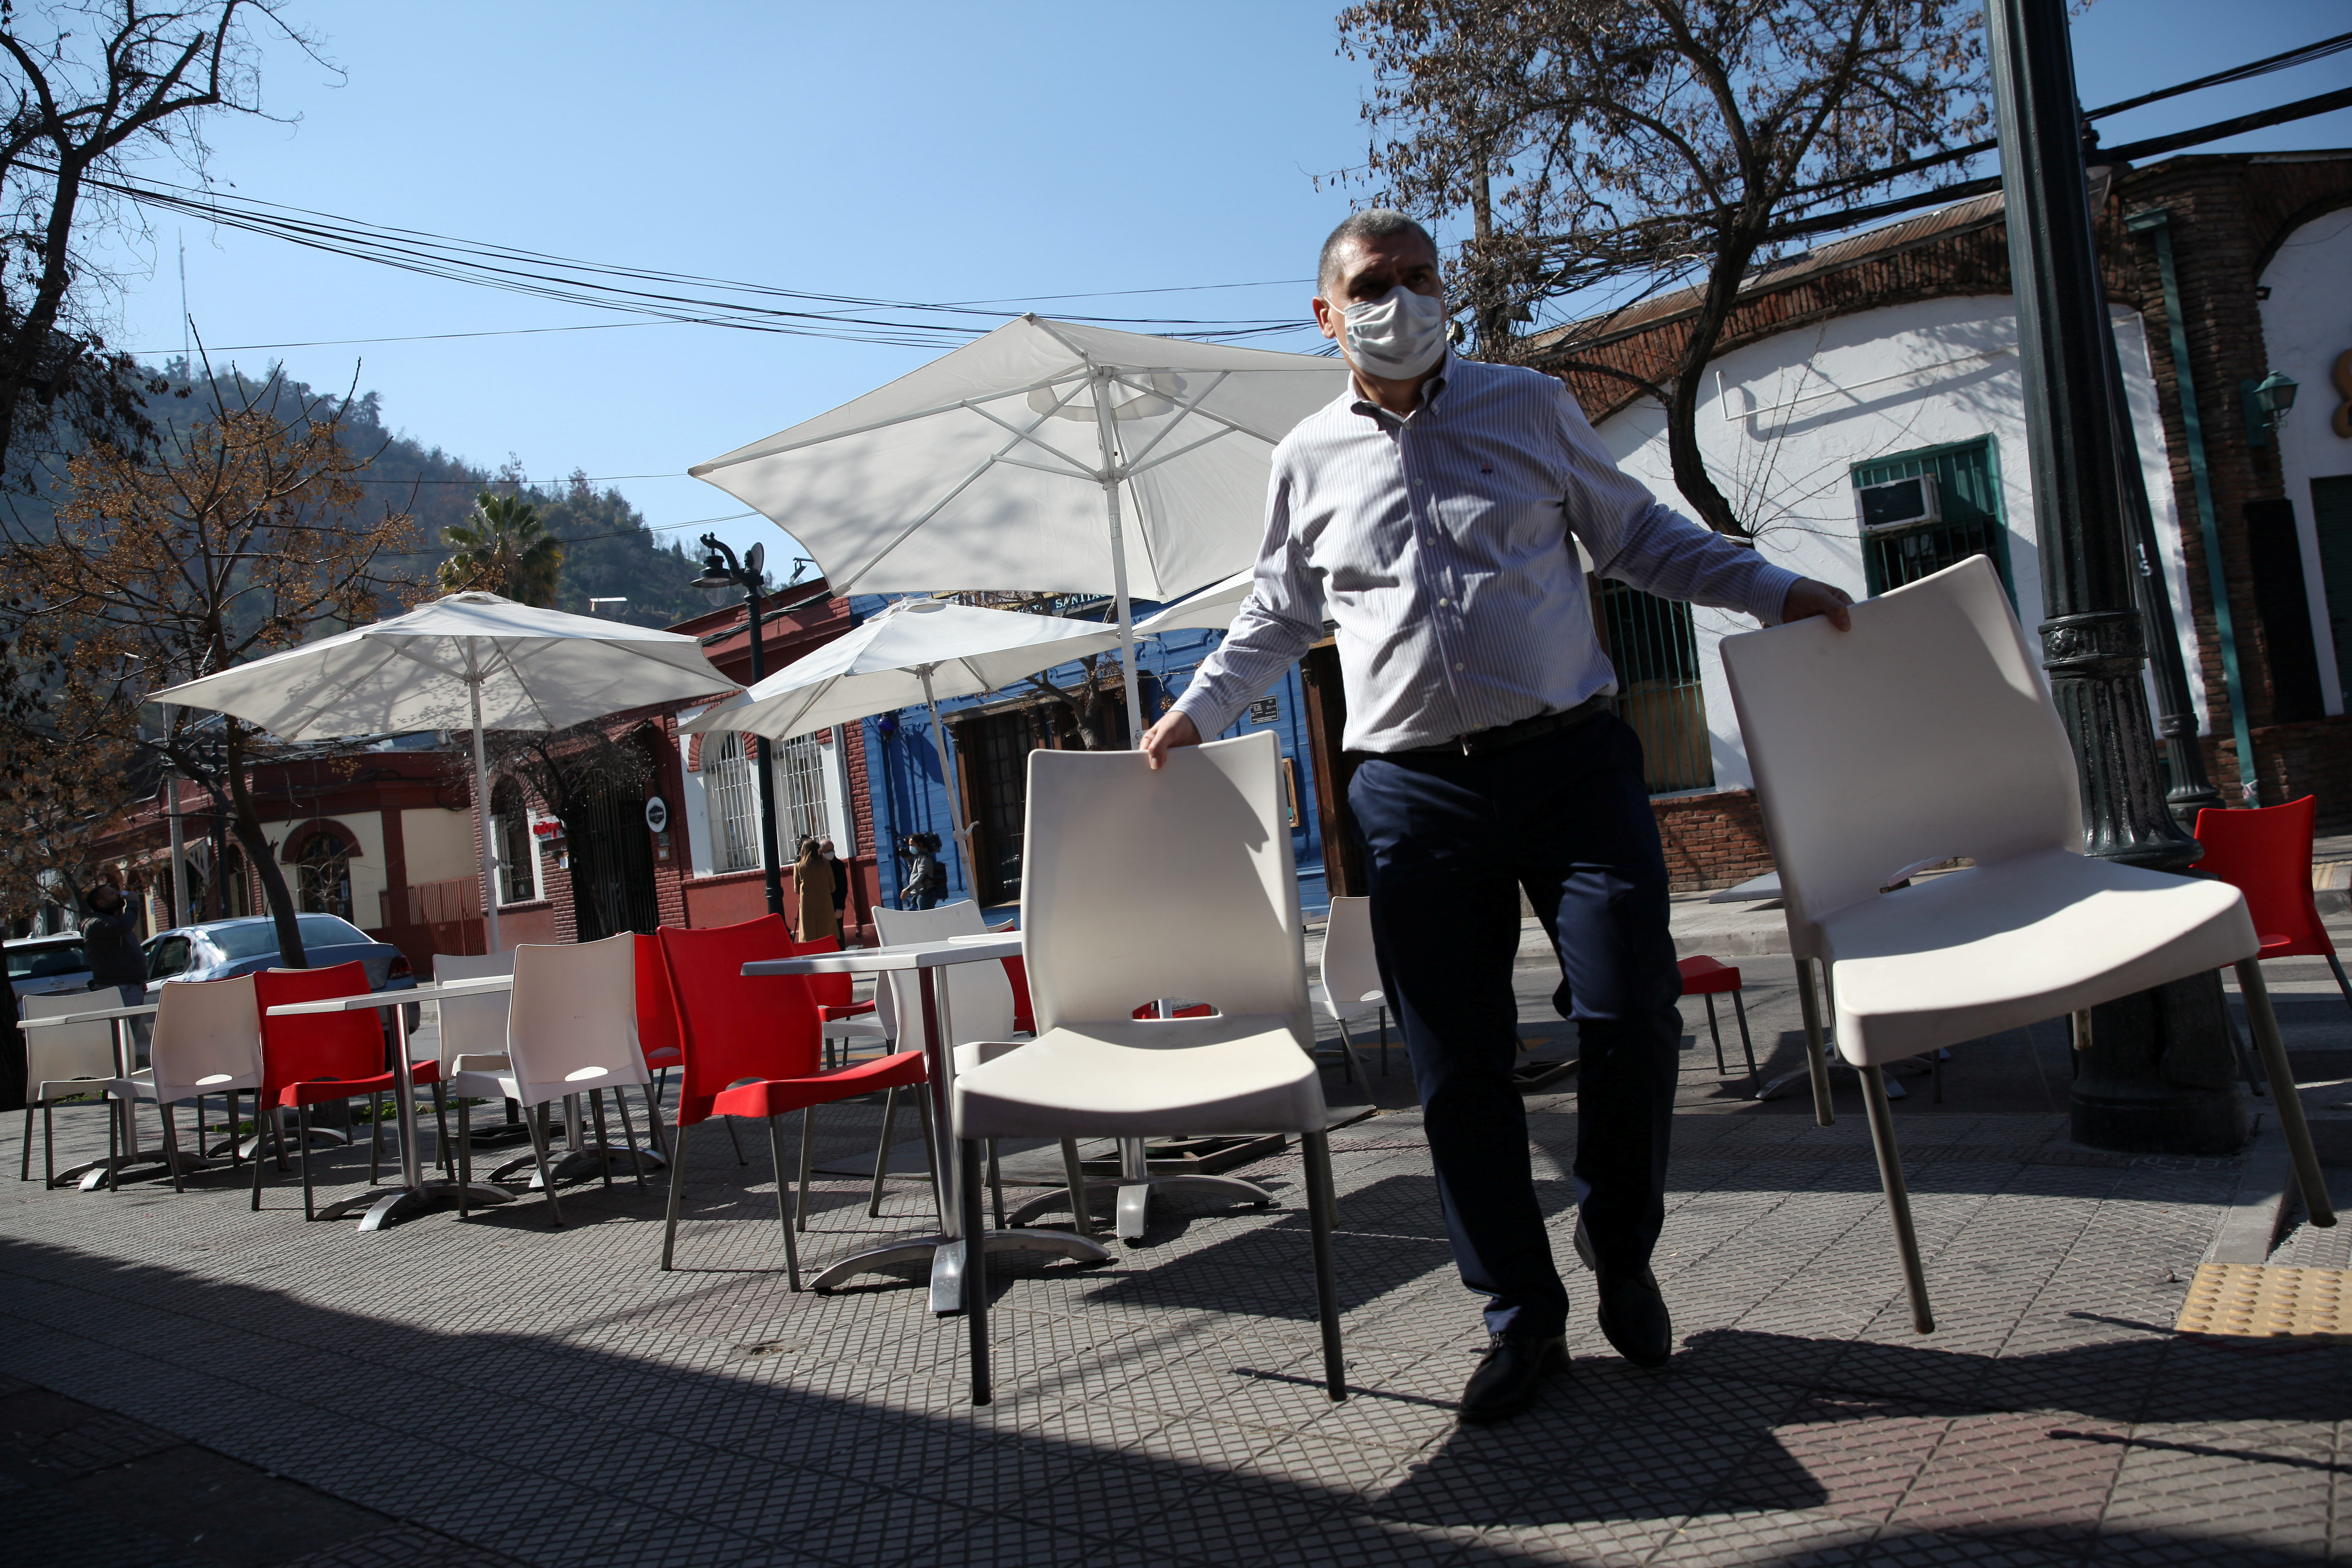 A man arranges furniture at a restaurant preparing to reopen as Chile's government allows outdoor servicing in restaurants after easing some lockdown measures put in place during the coronavirus disease (COVID-19) outbreak, in Santiago, Chile August 31, 2020. REUTERS/Ivan Alvarado - RC27PI9JK9XW